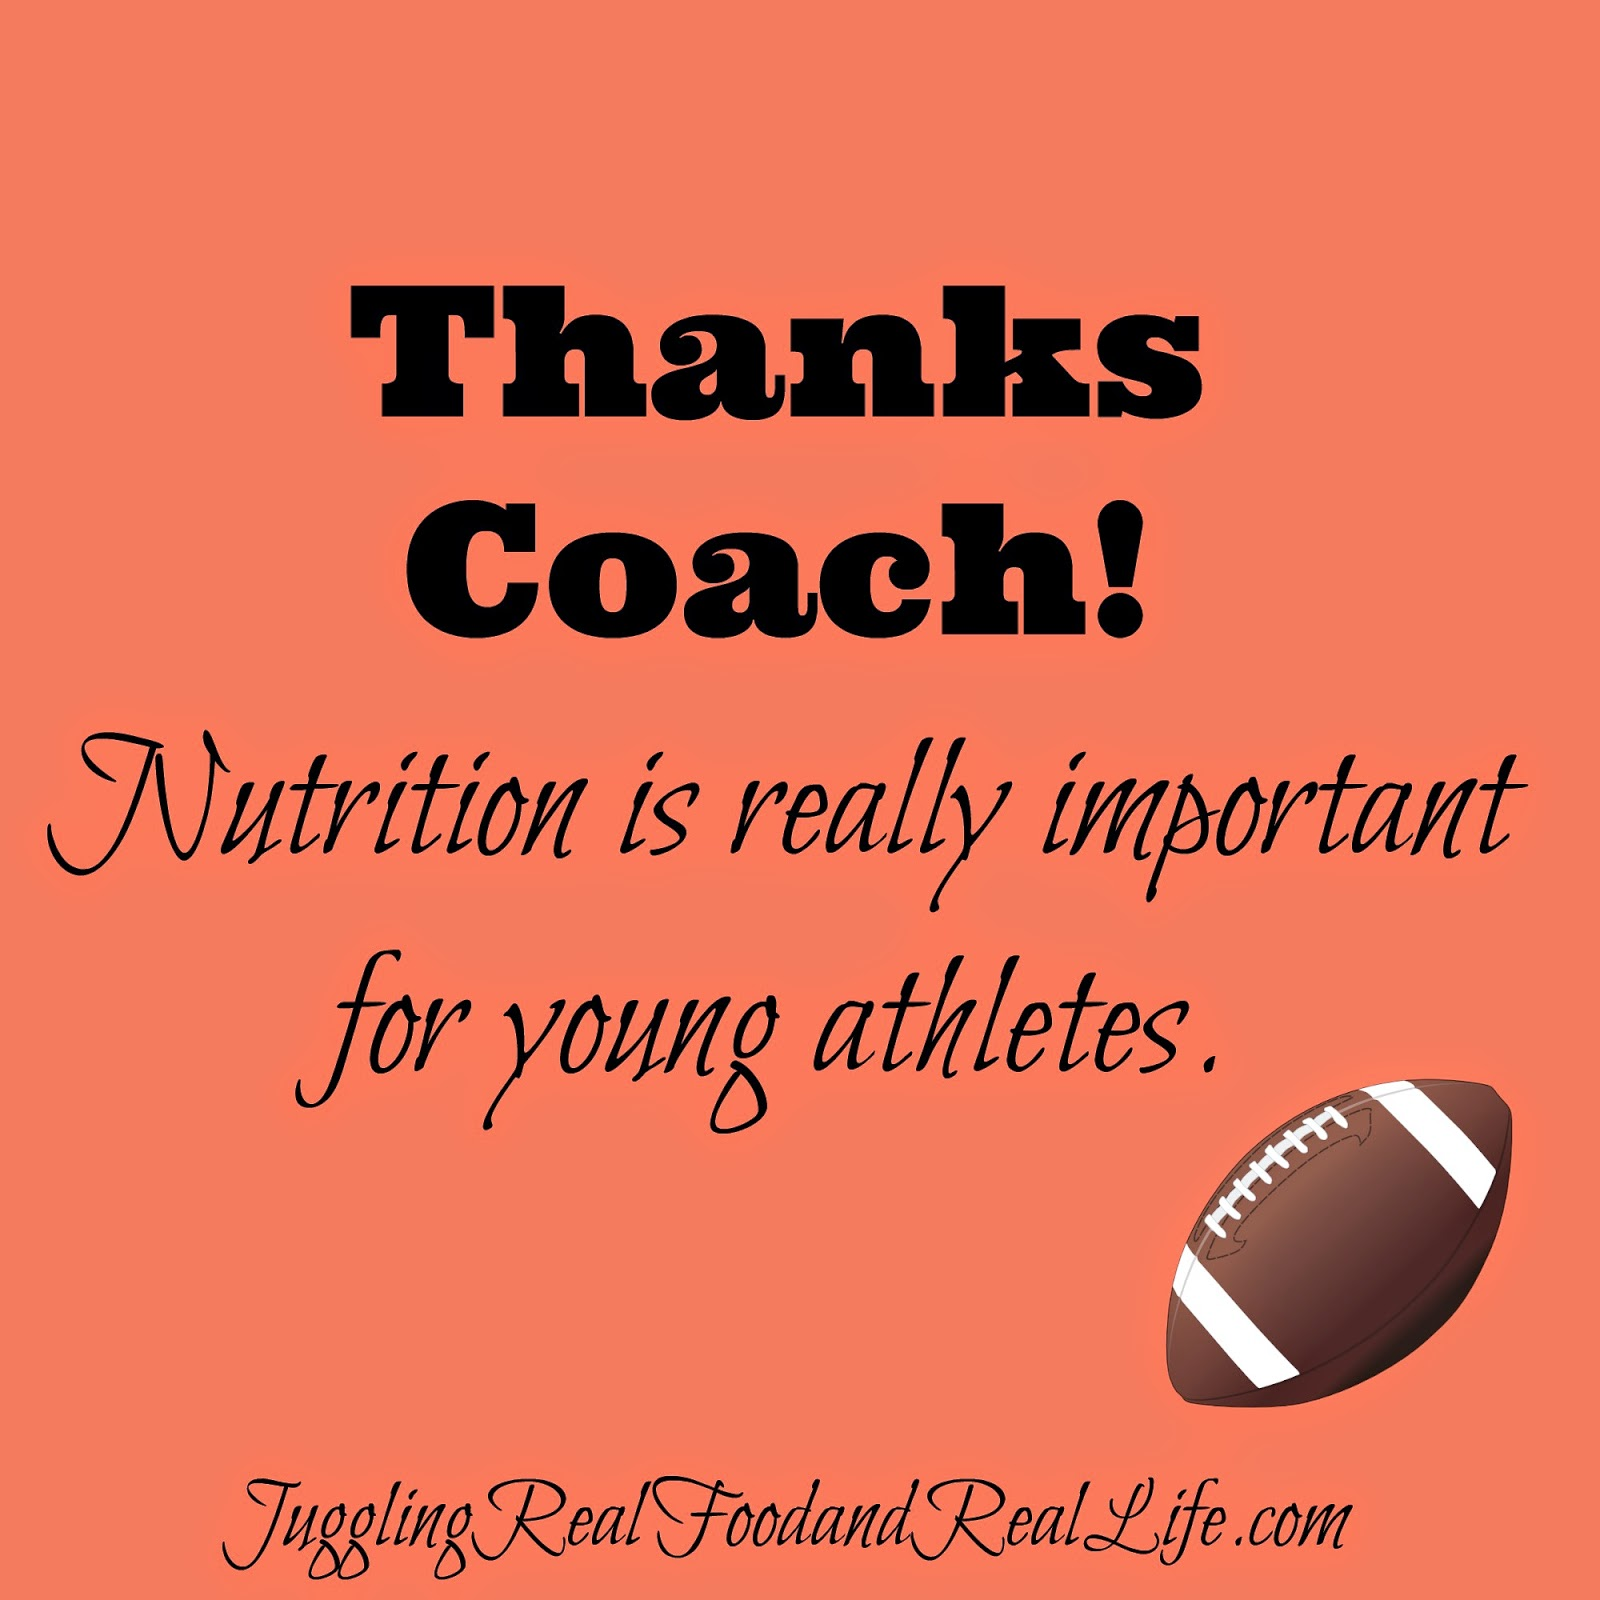 We Finally Have A Coach Who Cares About Nutrition!